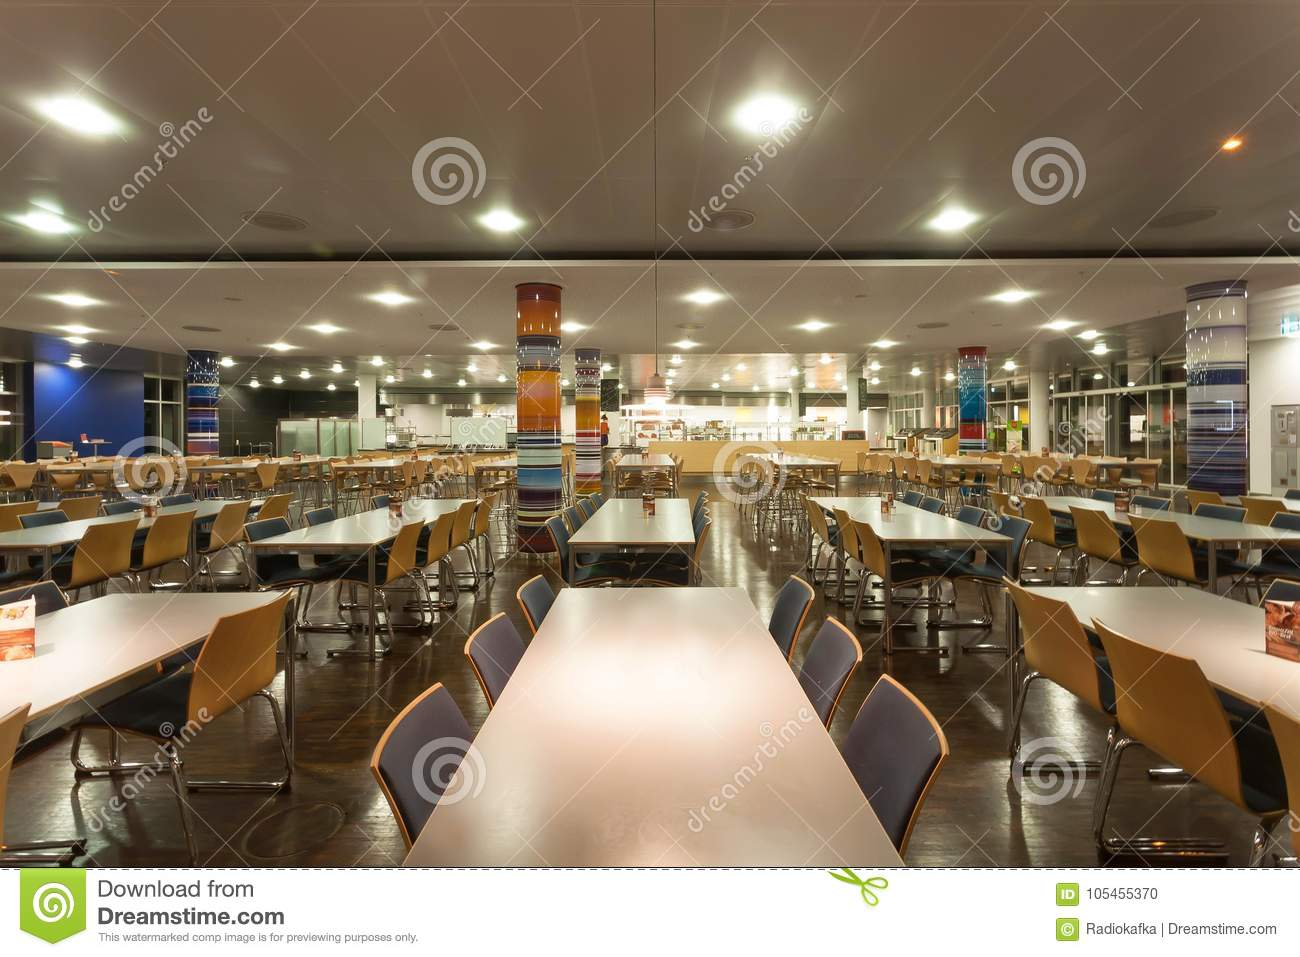 Munich germany november 17 2017 empty space of huge cafe with bright lamps and tables in modern furniture style on november 17 2017